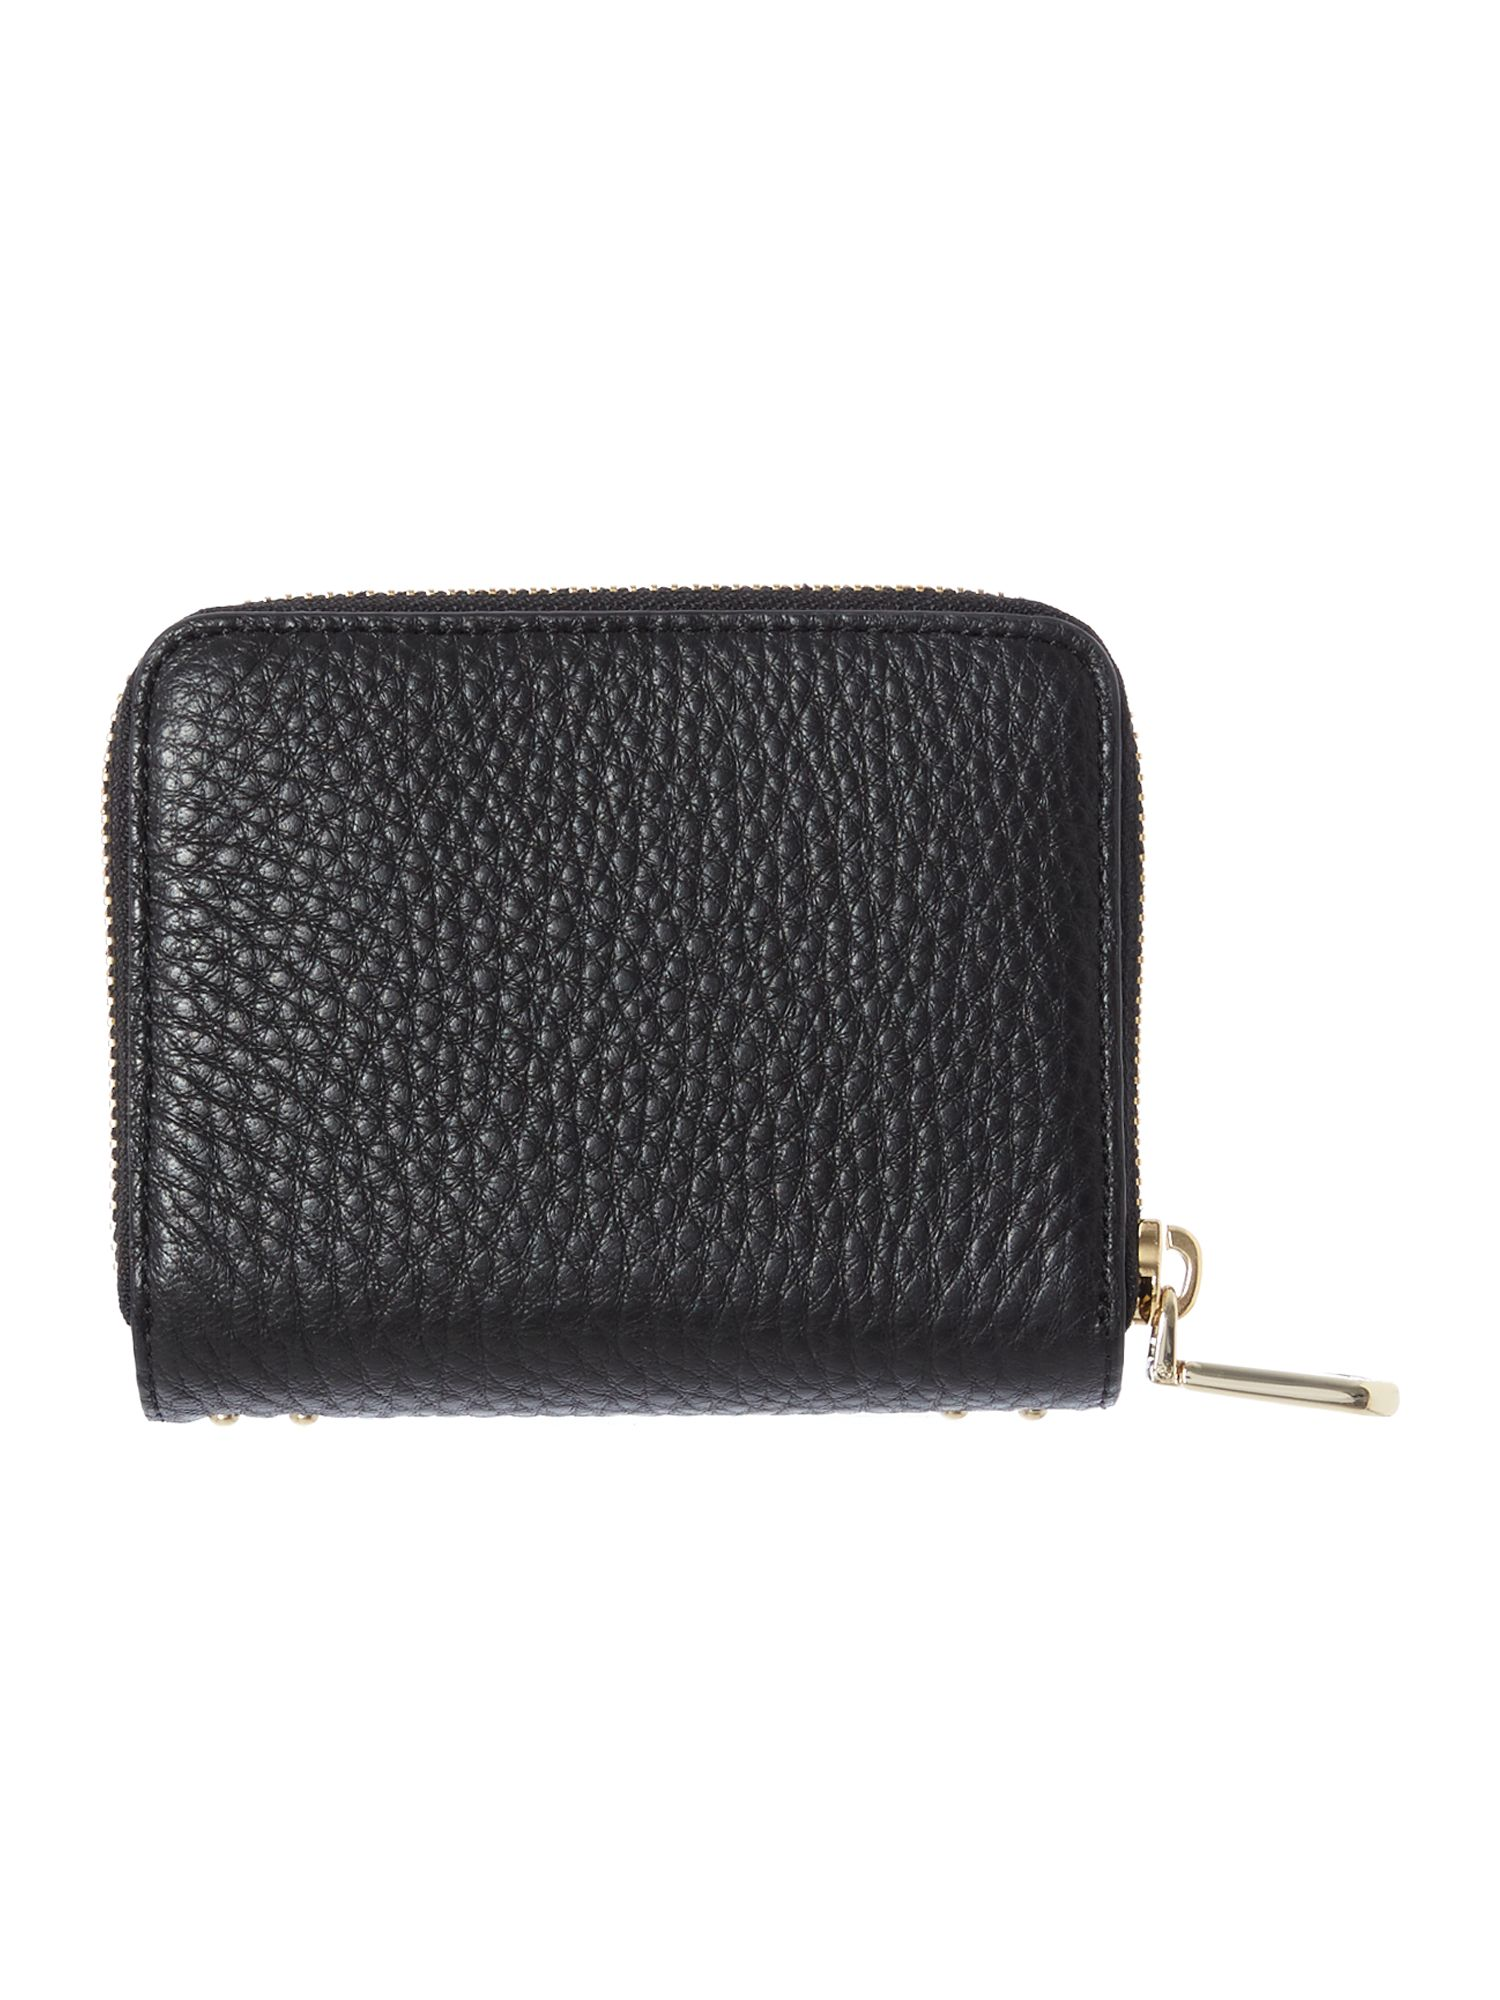 Tribeca black small zip around purse